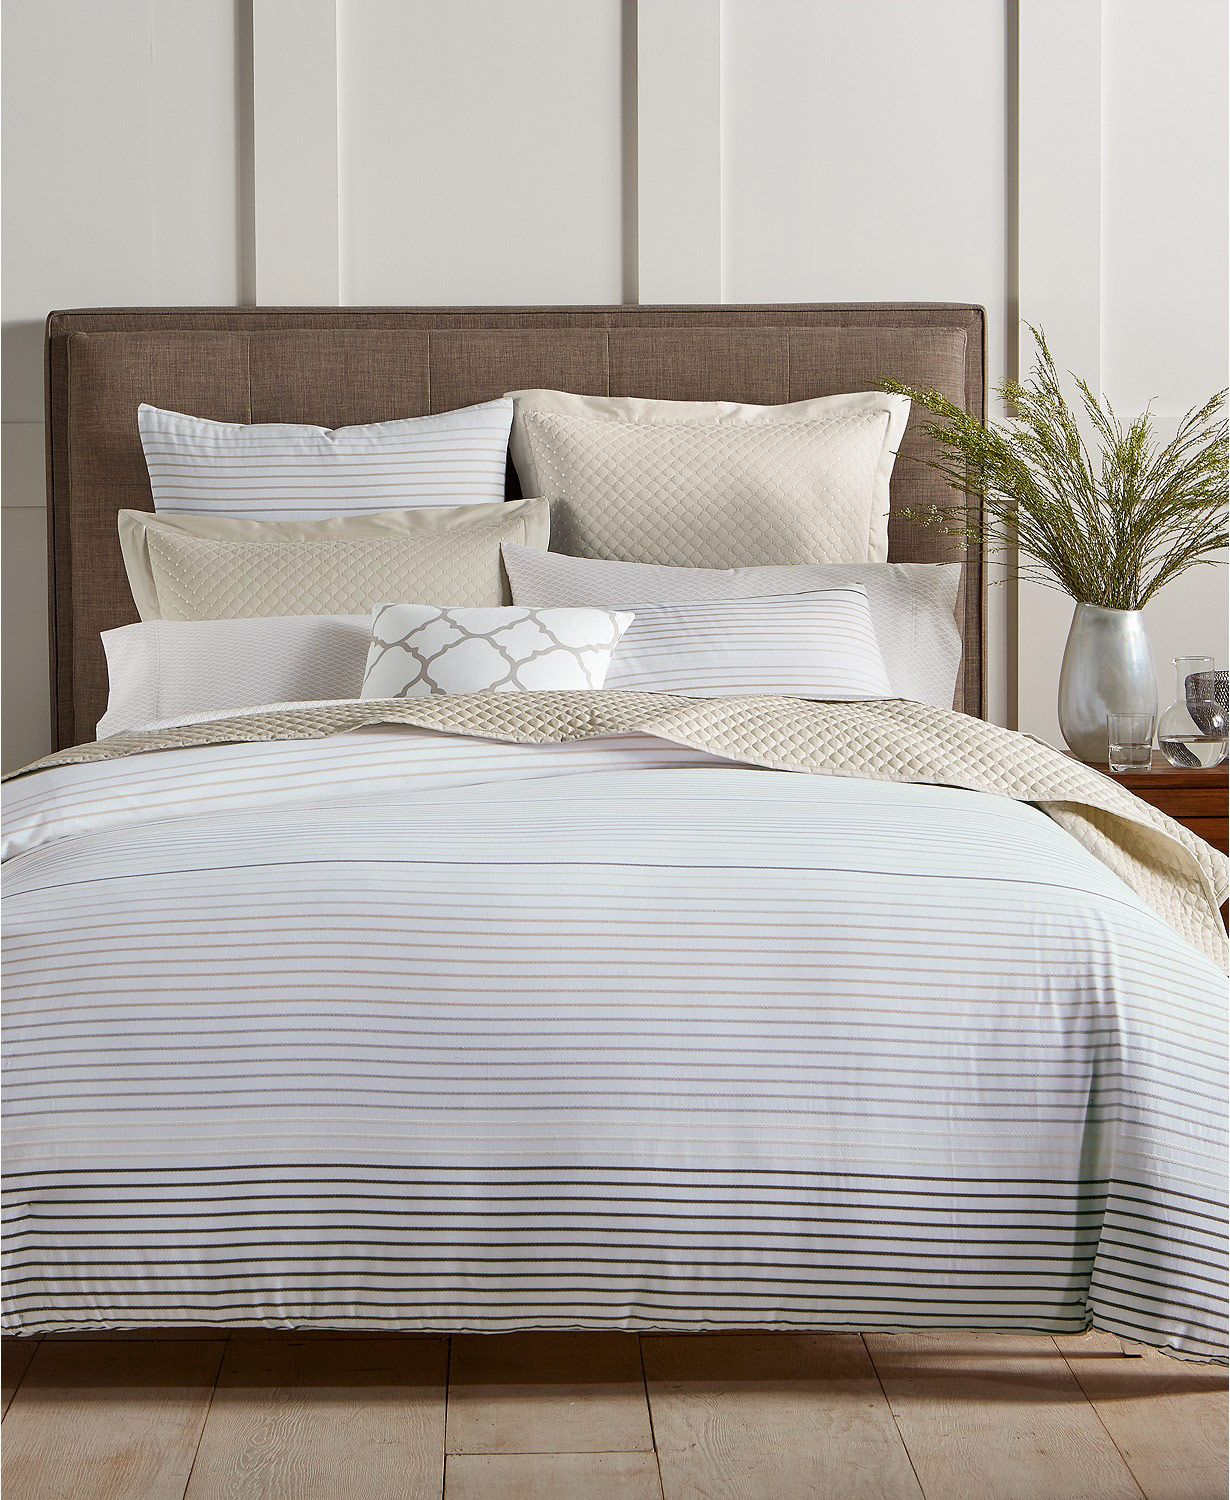 Charter Club Damask Designs Woven Stripe 300-Thread Count 3-Pc. Full/Queen Comforter Set